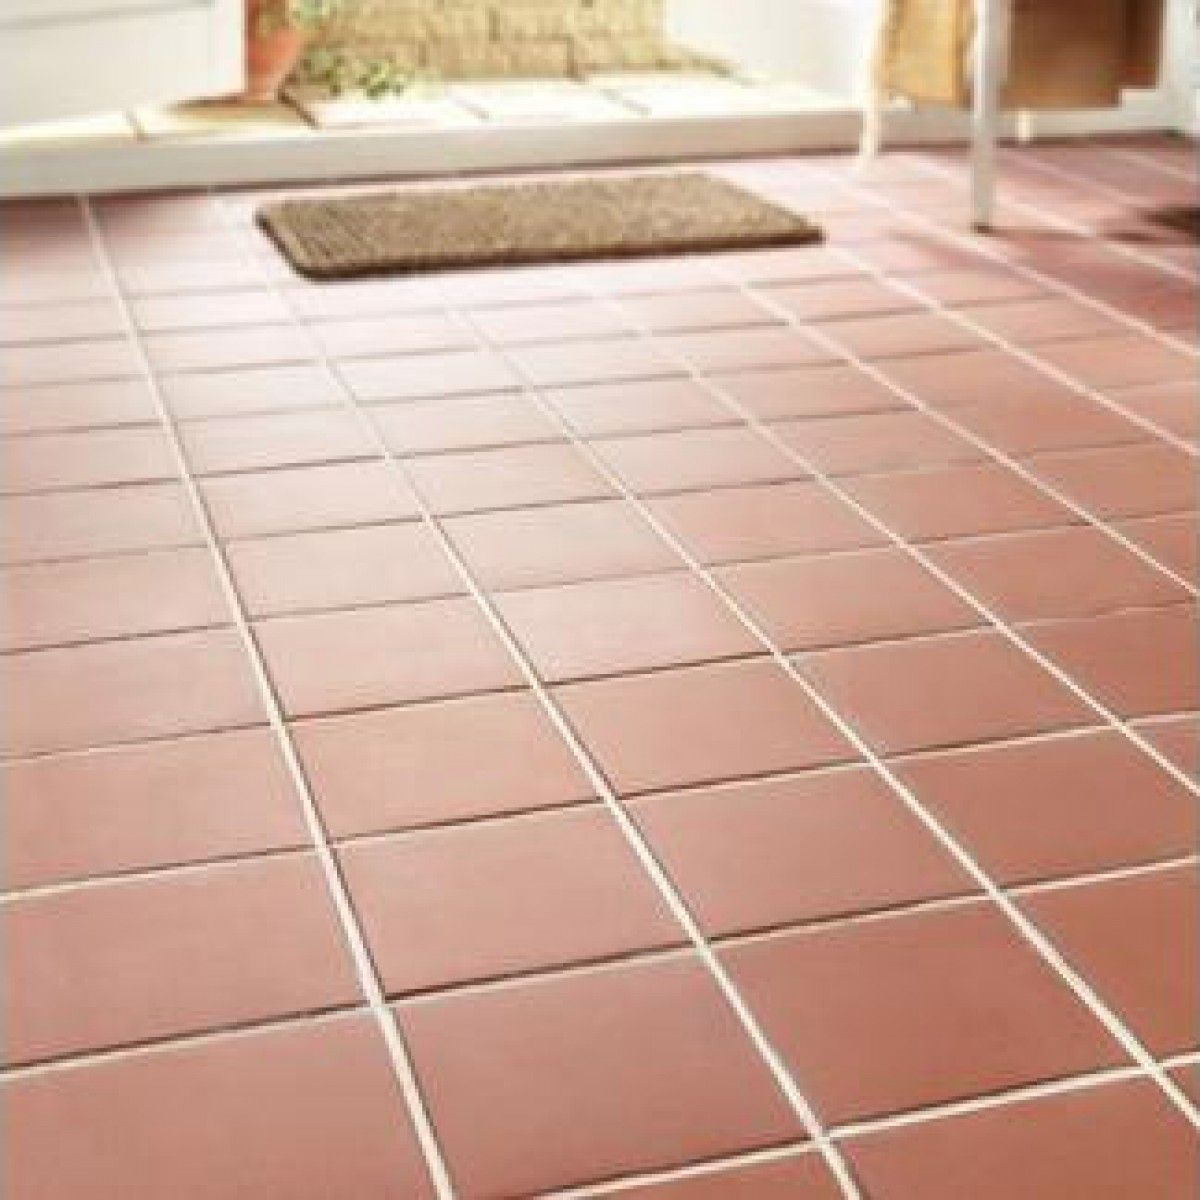 Red quarry floor tiles choice image home flooring design red quarry floor tiles gallery home flooring design red quarry floor tiles choice image home flooring doublecrazyfo Image collections